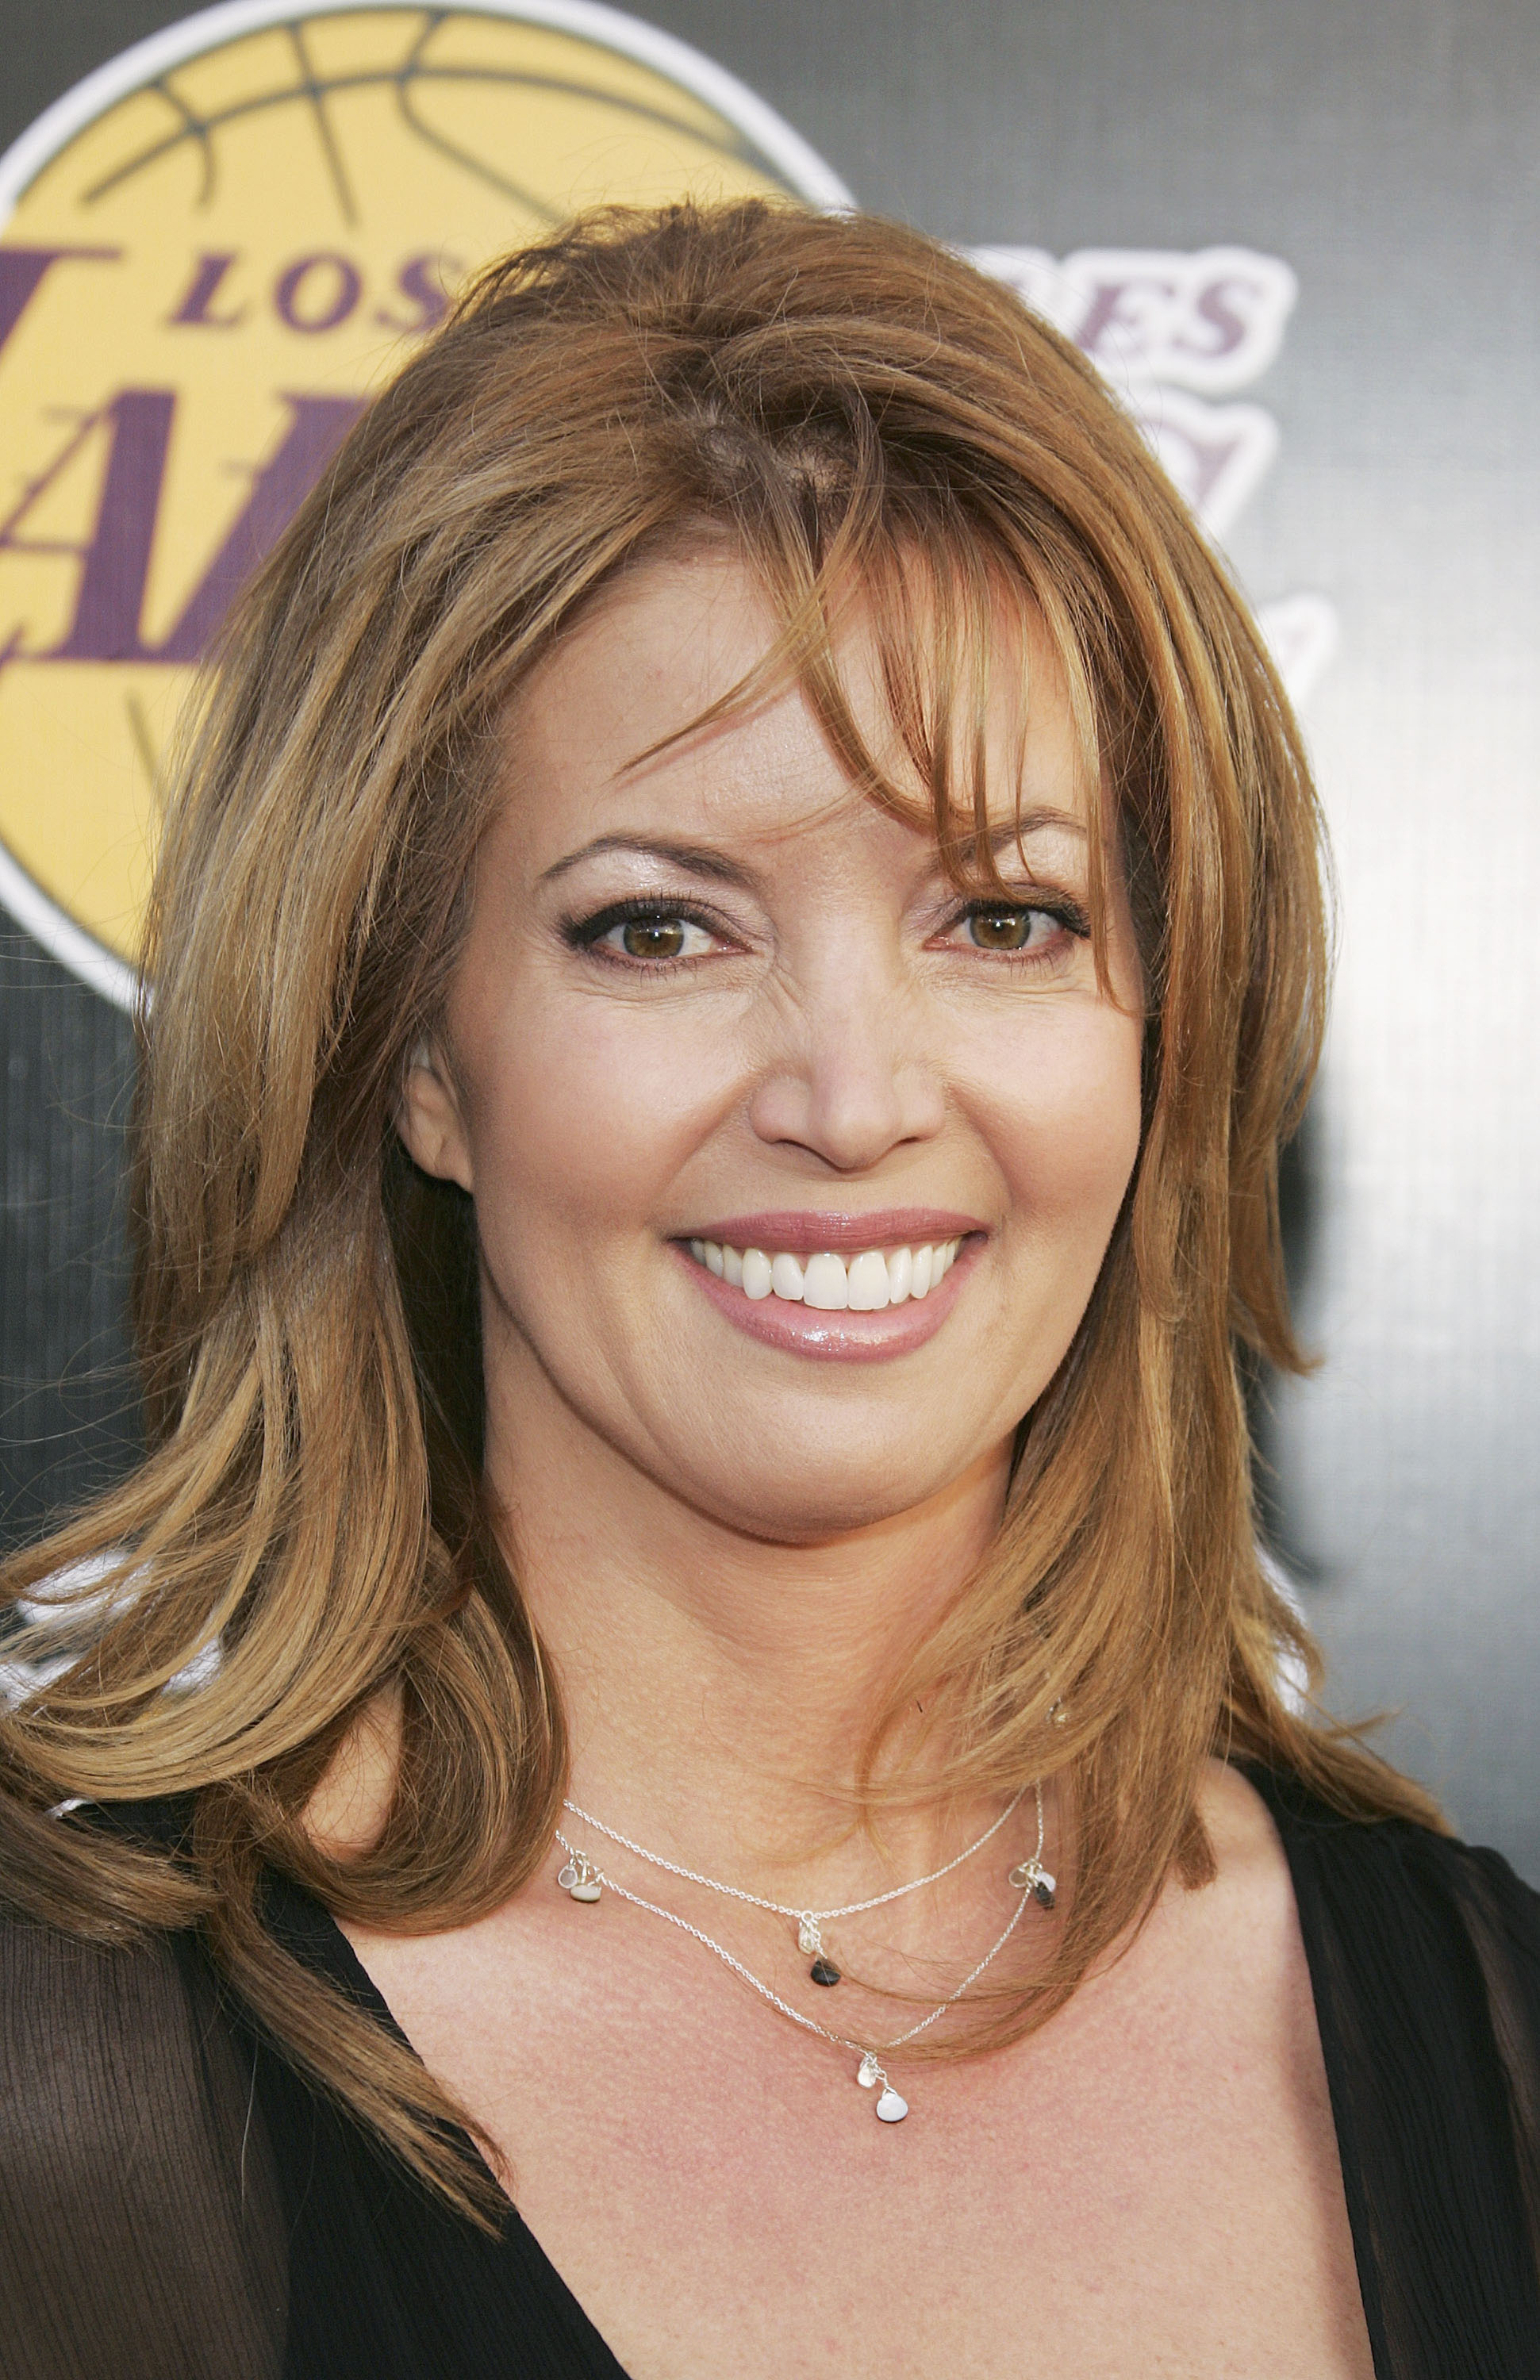 SANTA MONICA, CA - APRIL 14:  Los Angeles Lakers executive Jeanie Buss attends the 2nd Annual Las Vegas Casino Night Celebrity Poker Challenge on April 14, 2005 in Santa Monica, California. The event Benefits the Los Angeles Lakers Youth Foundation. (Phot